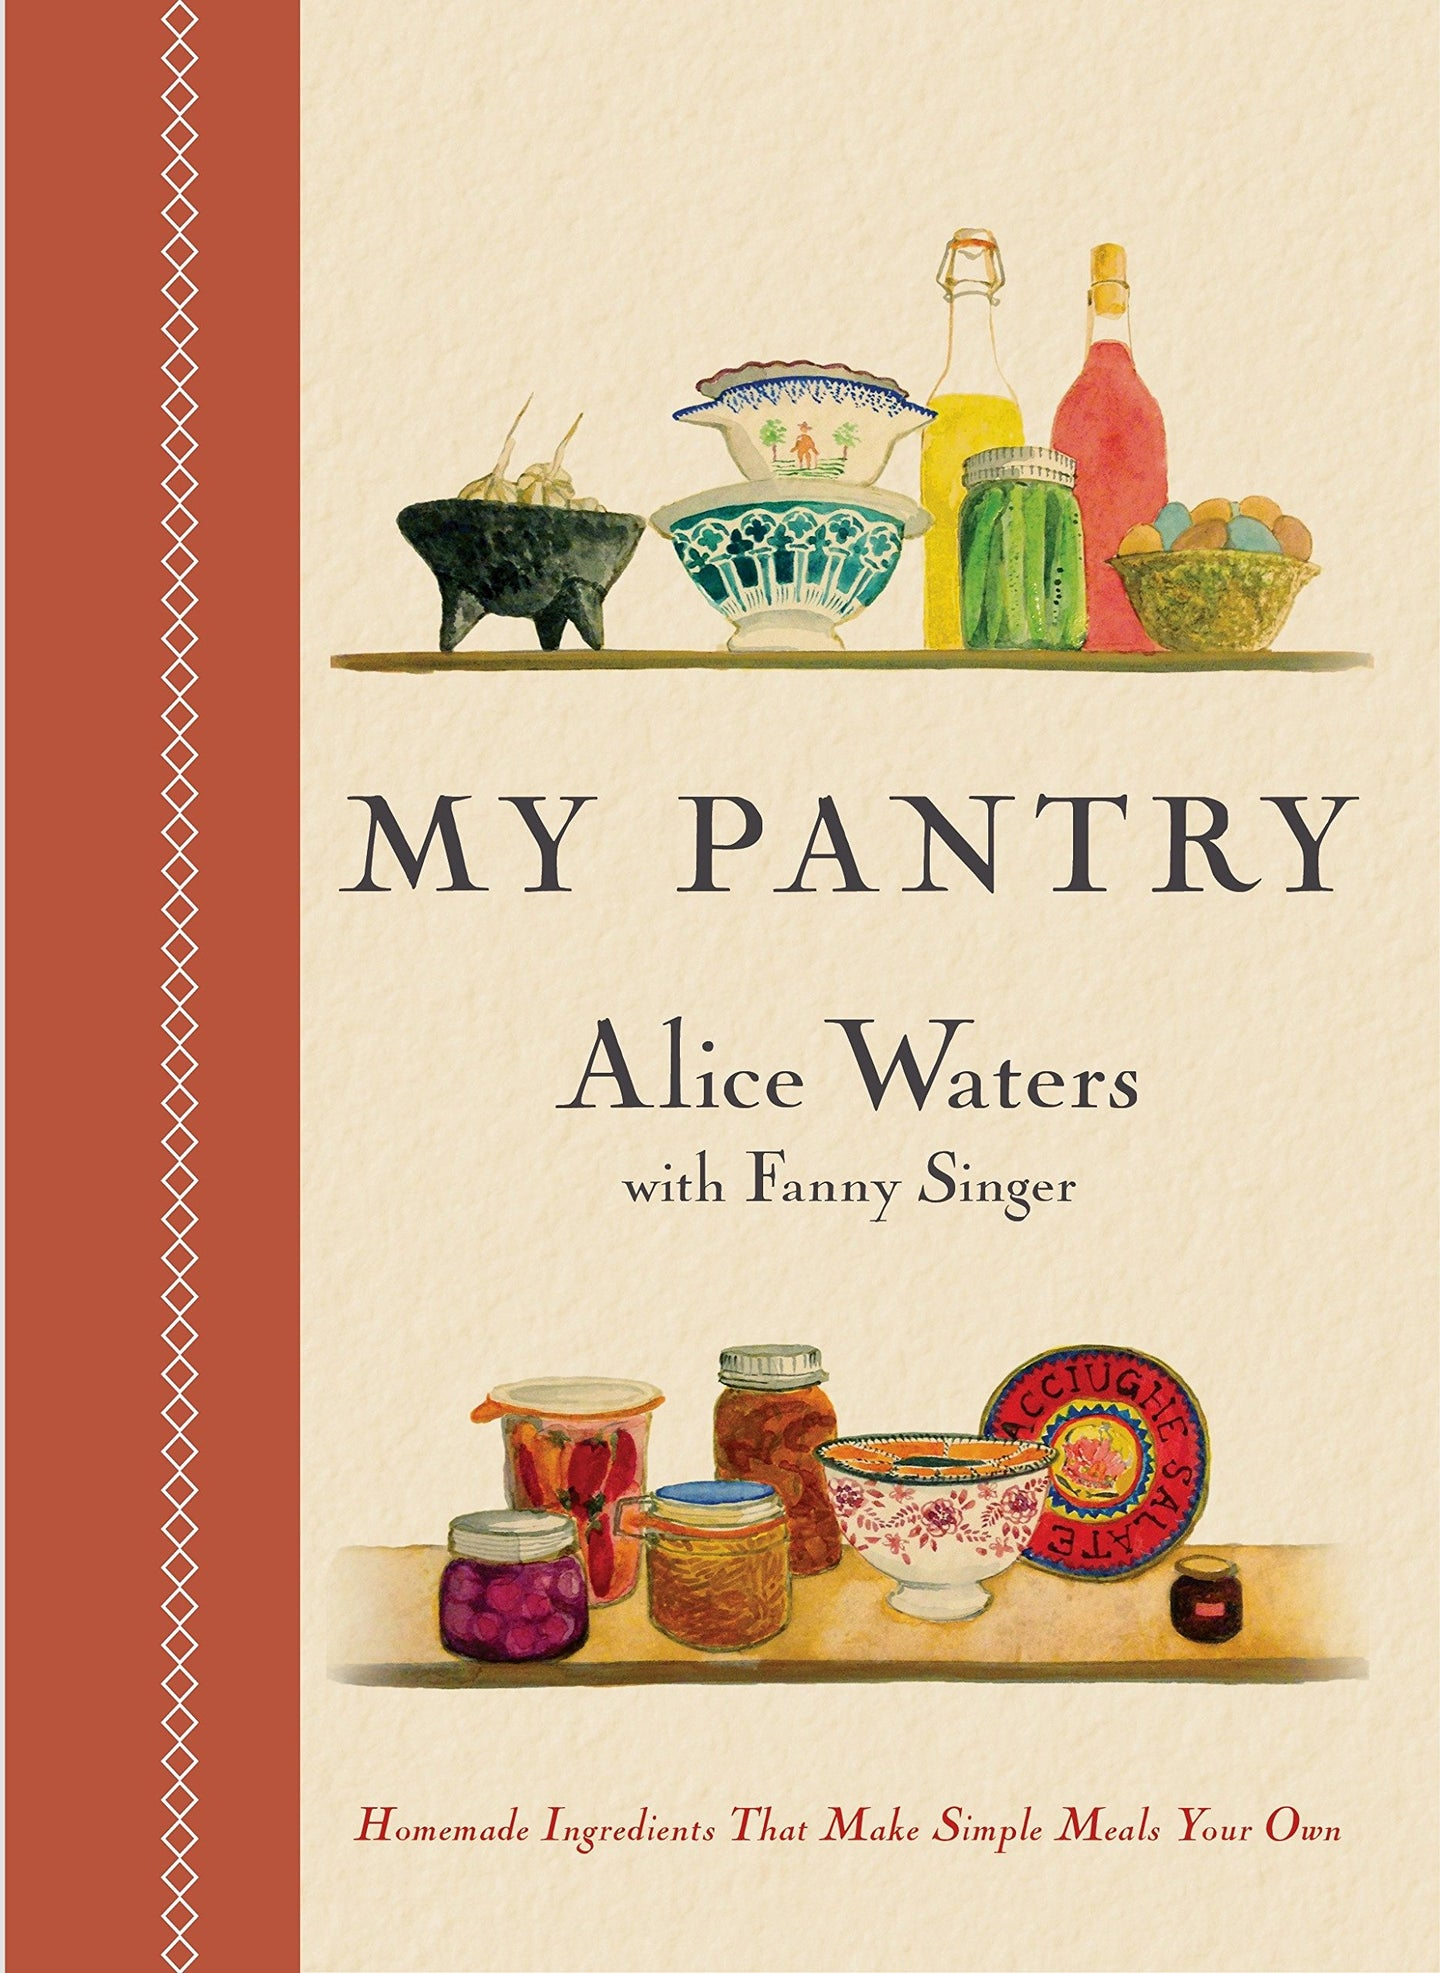 My Pantry: Alice Waters